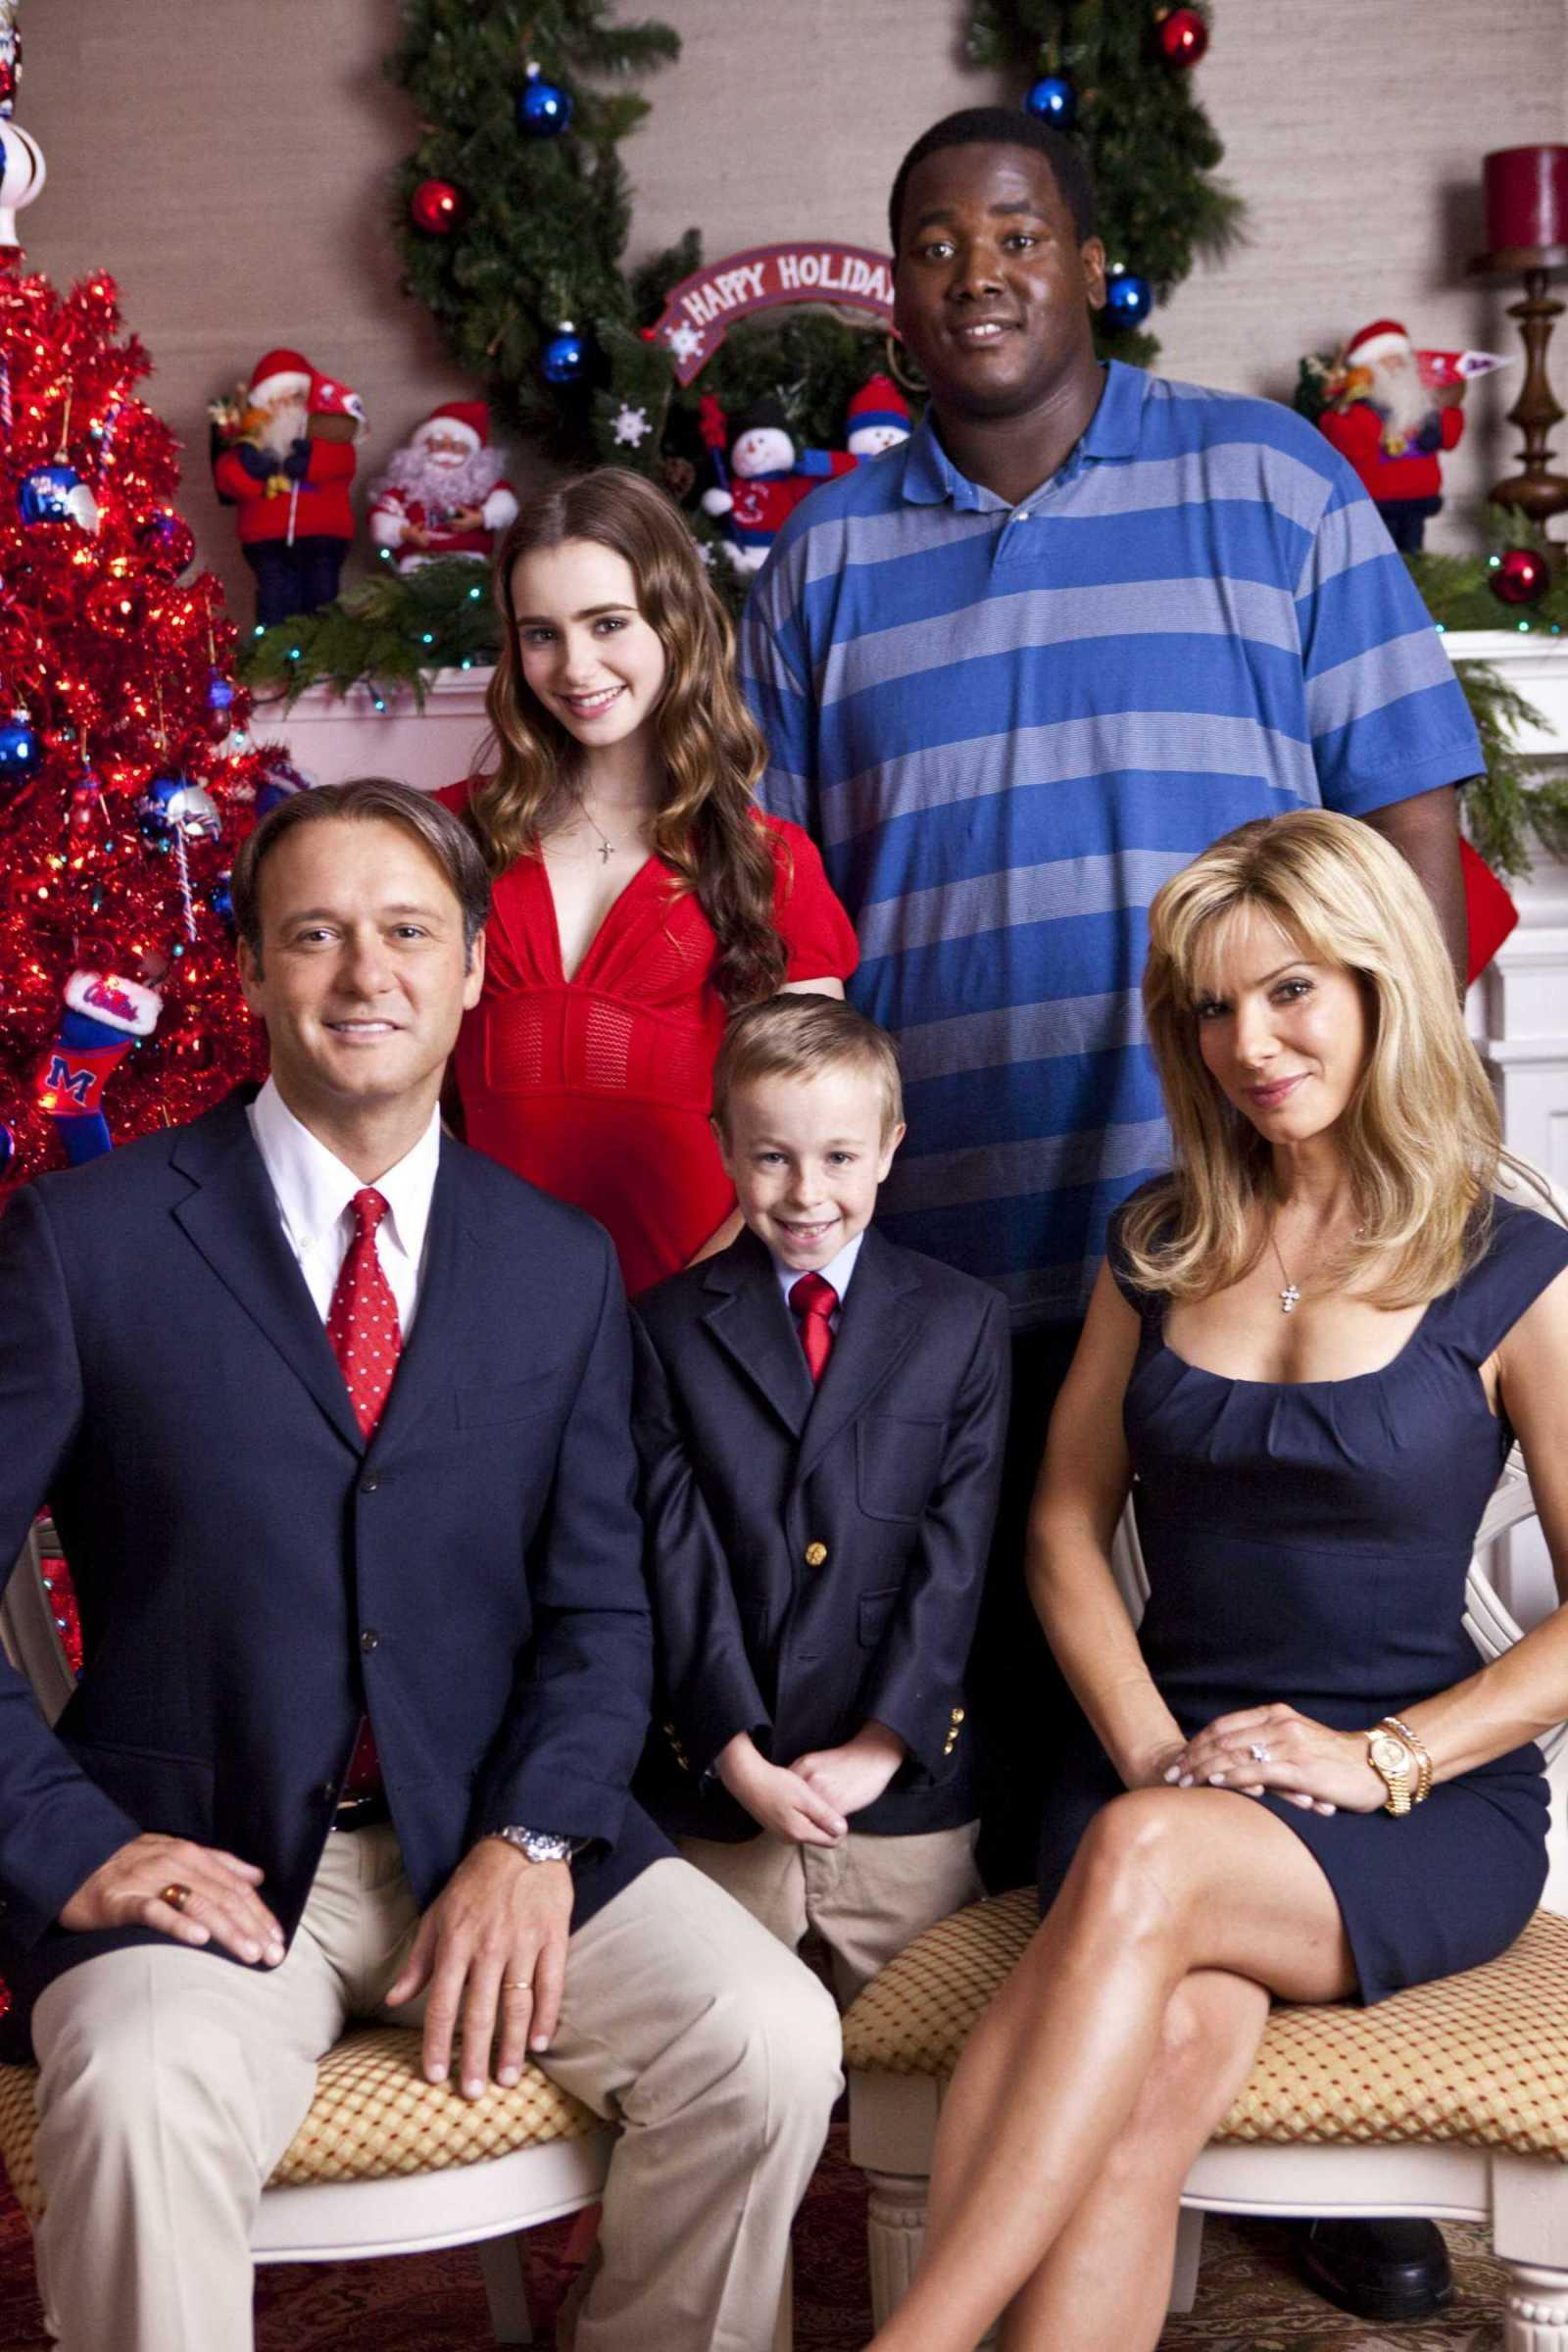 family concepts and dynamics in the movie the blind side Drama, sport director: john lee hancock starring: sandra bullock, catherine dyer, kathy bates and others the blind side depicts the remarkable true story of michael oher, a homeless african-american youngster from a broken home, taken in by the touhys.